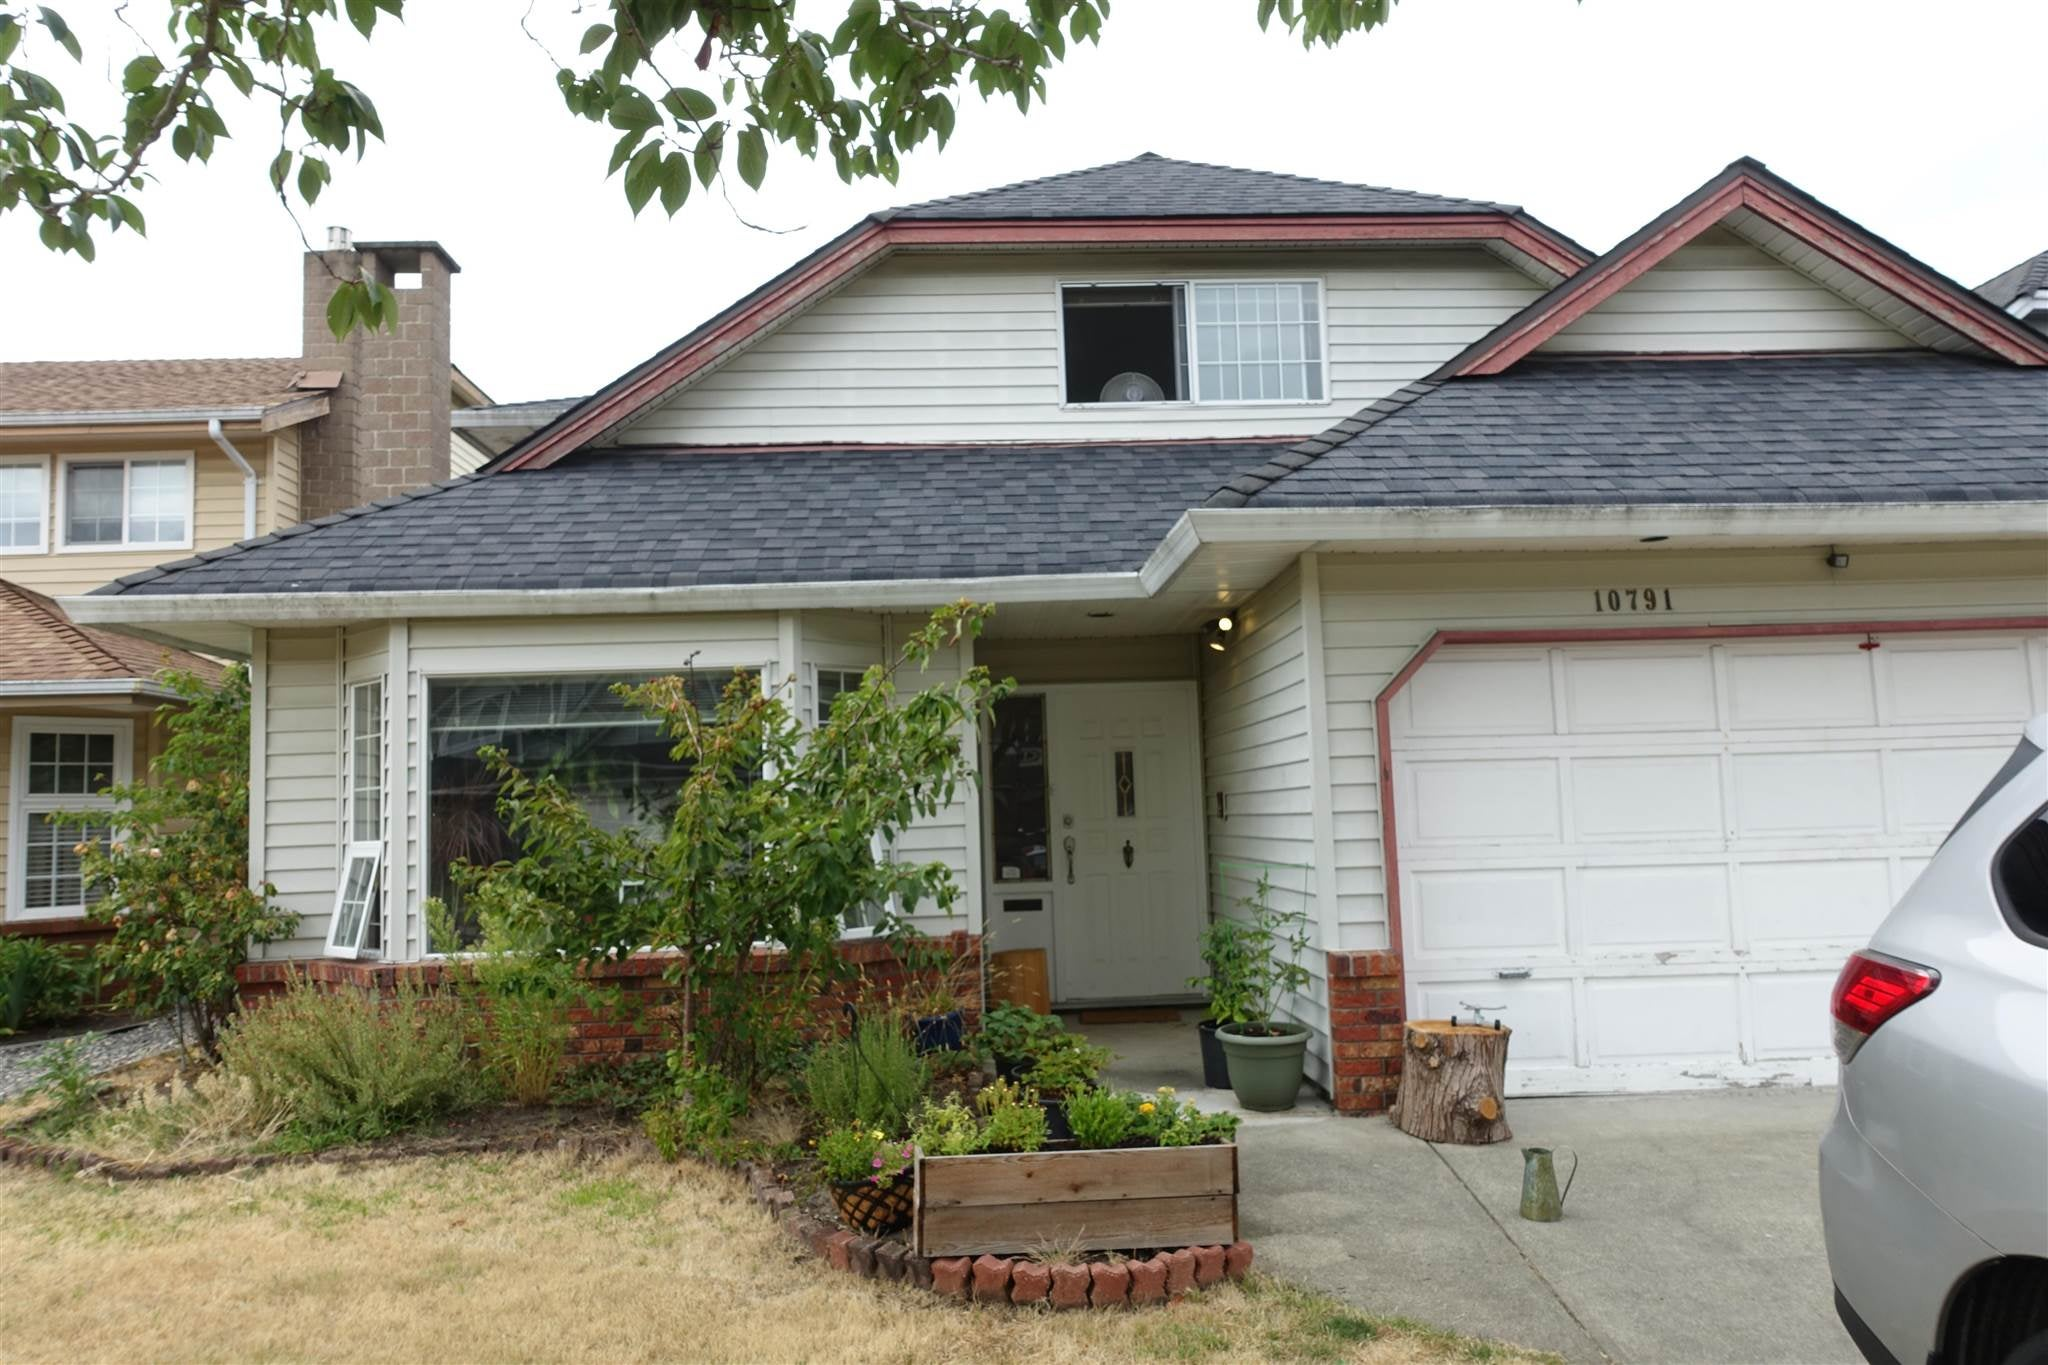 10791 ATHABASCA DRIVE - McNair House/Single Family for sale, 3 Bedrooms (R2602922)